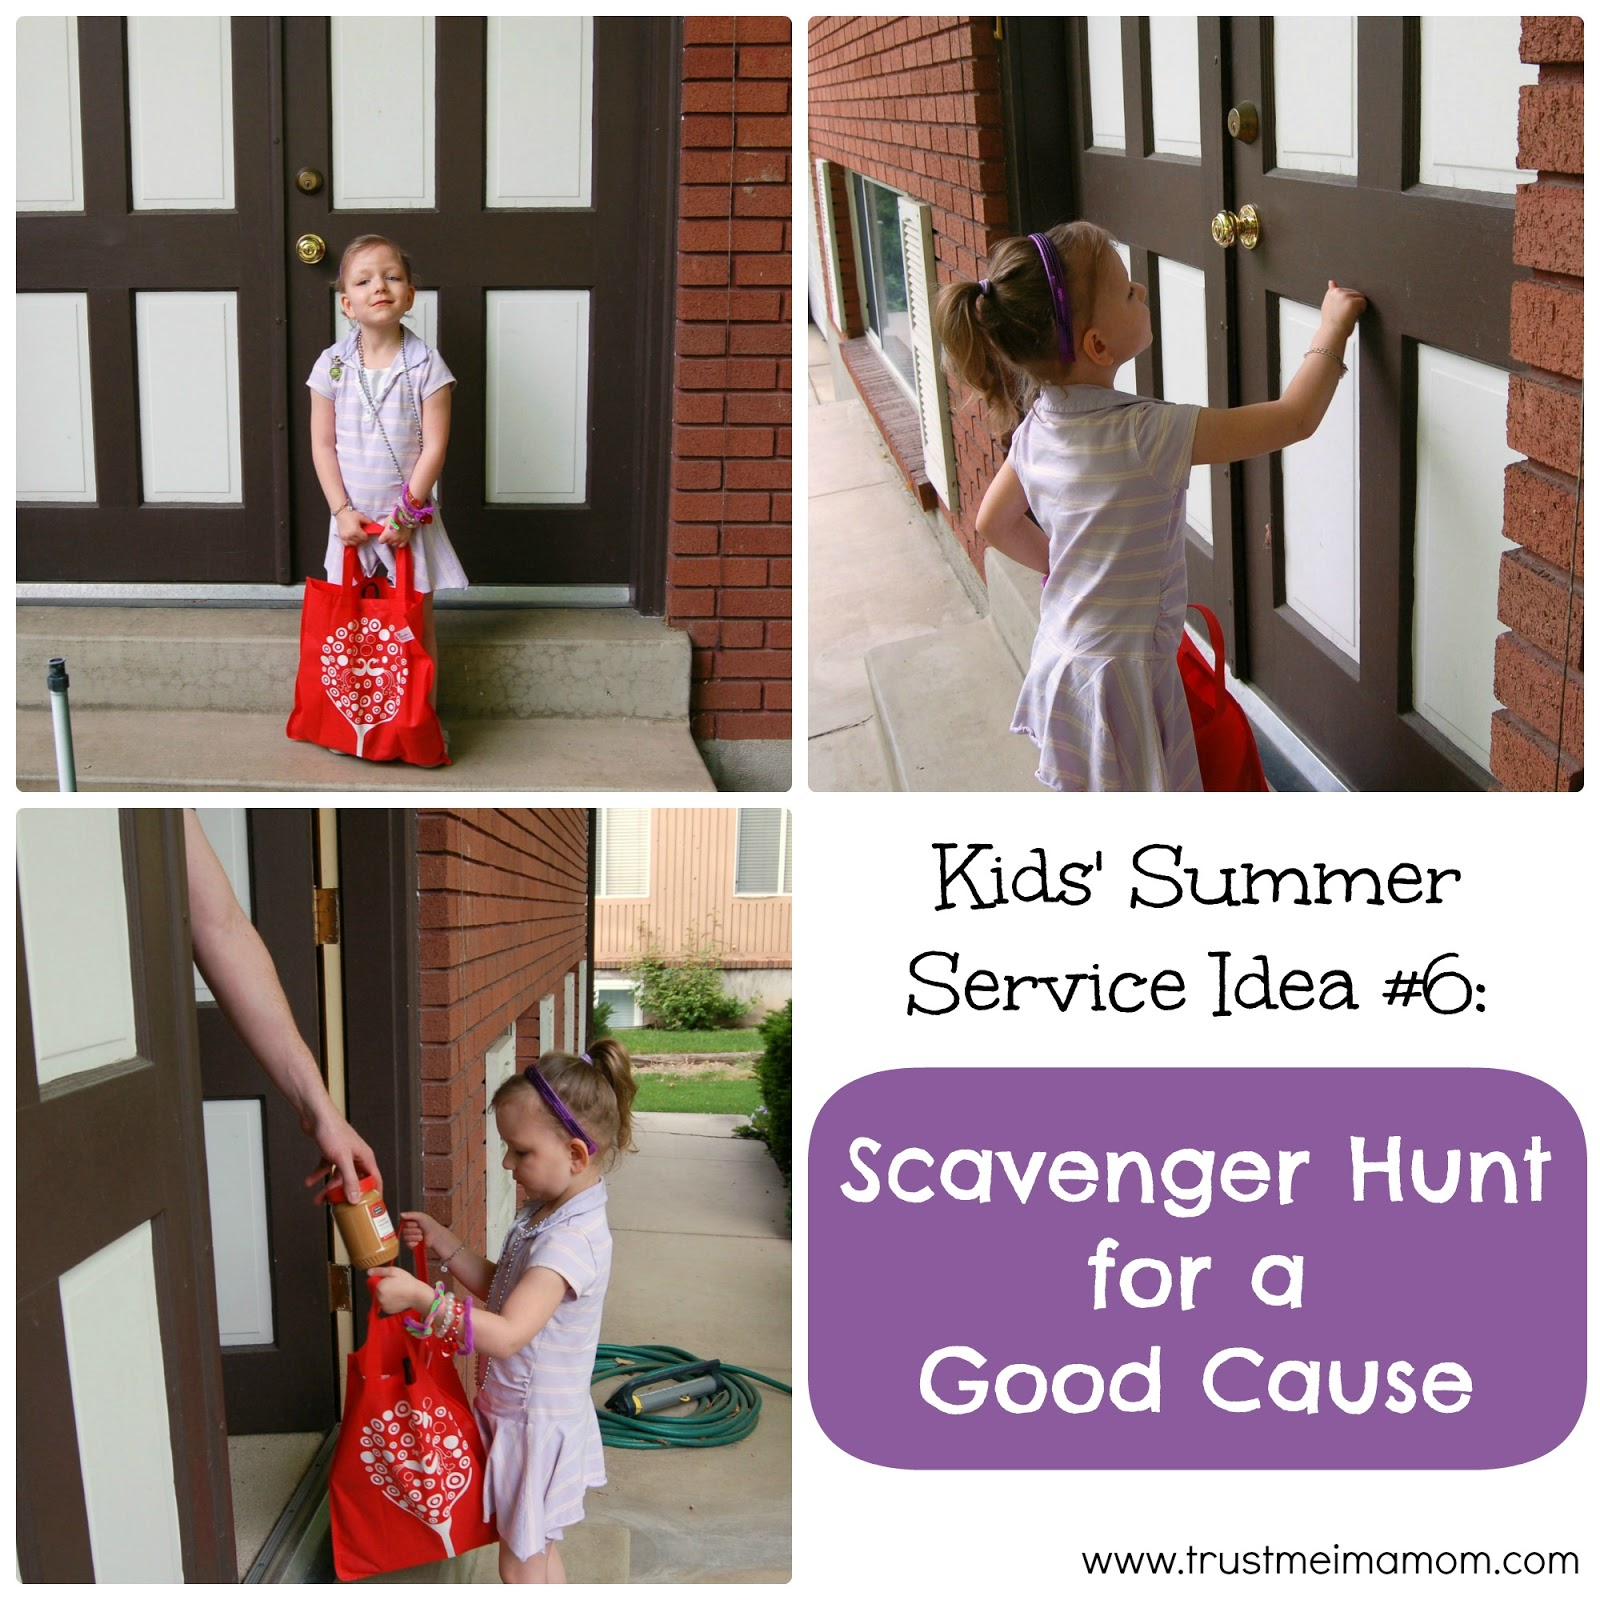 Fun Ways to Serve with Your Kids This Summer: Idea #6 - Have a scavenger hunt to find food to donate to your local food bank!